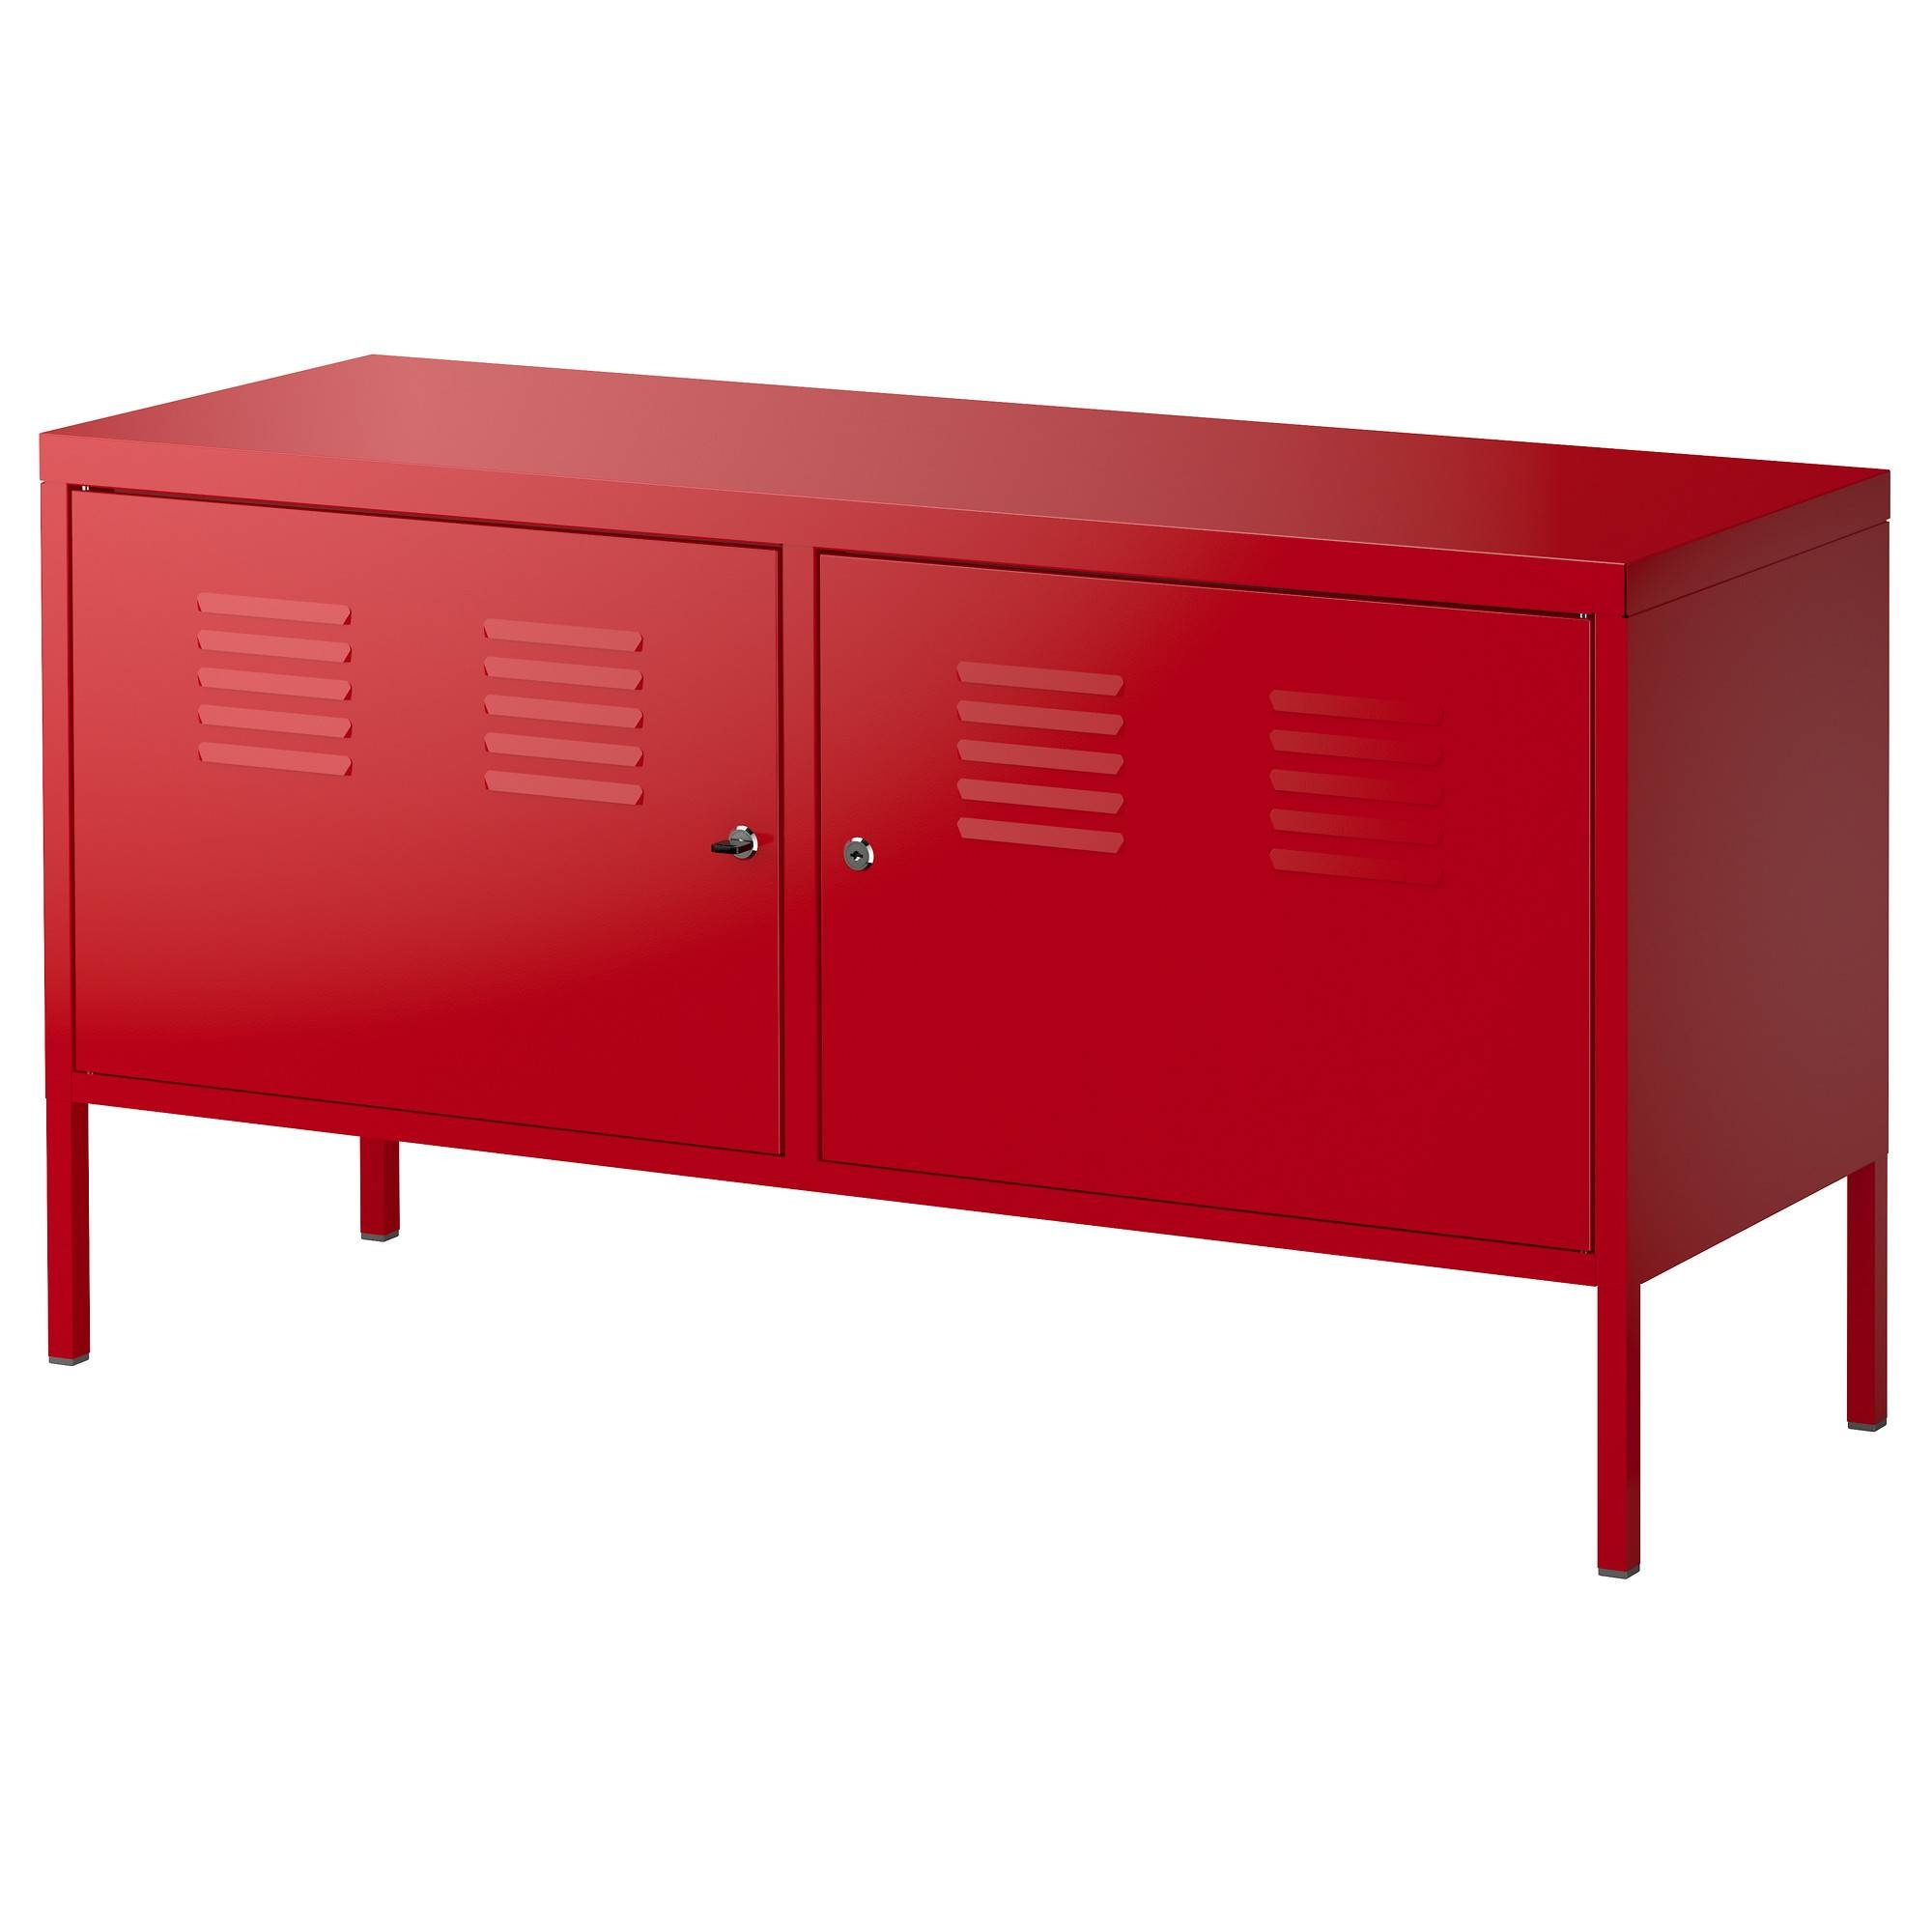 Ikea Ps Cabinet – Red – Ikea Inside Red Tv Cabinets (View 2 of 15)